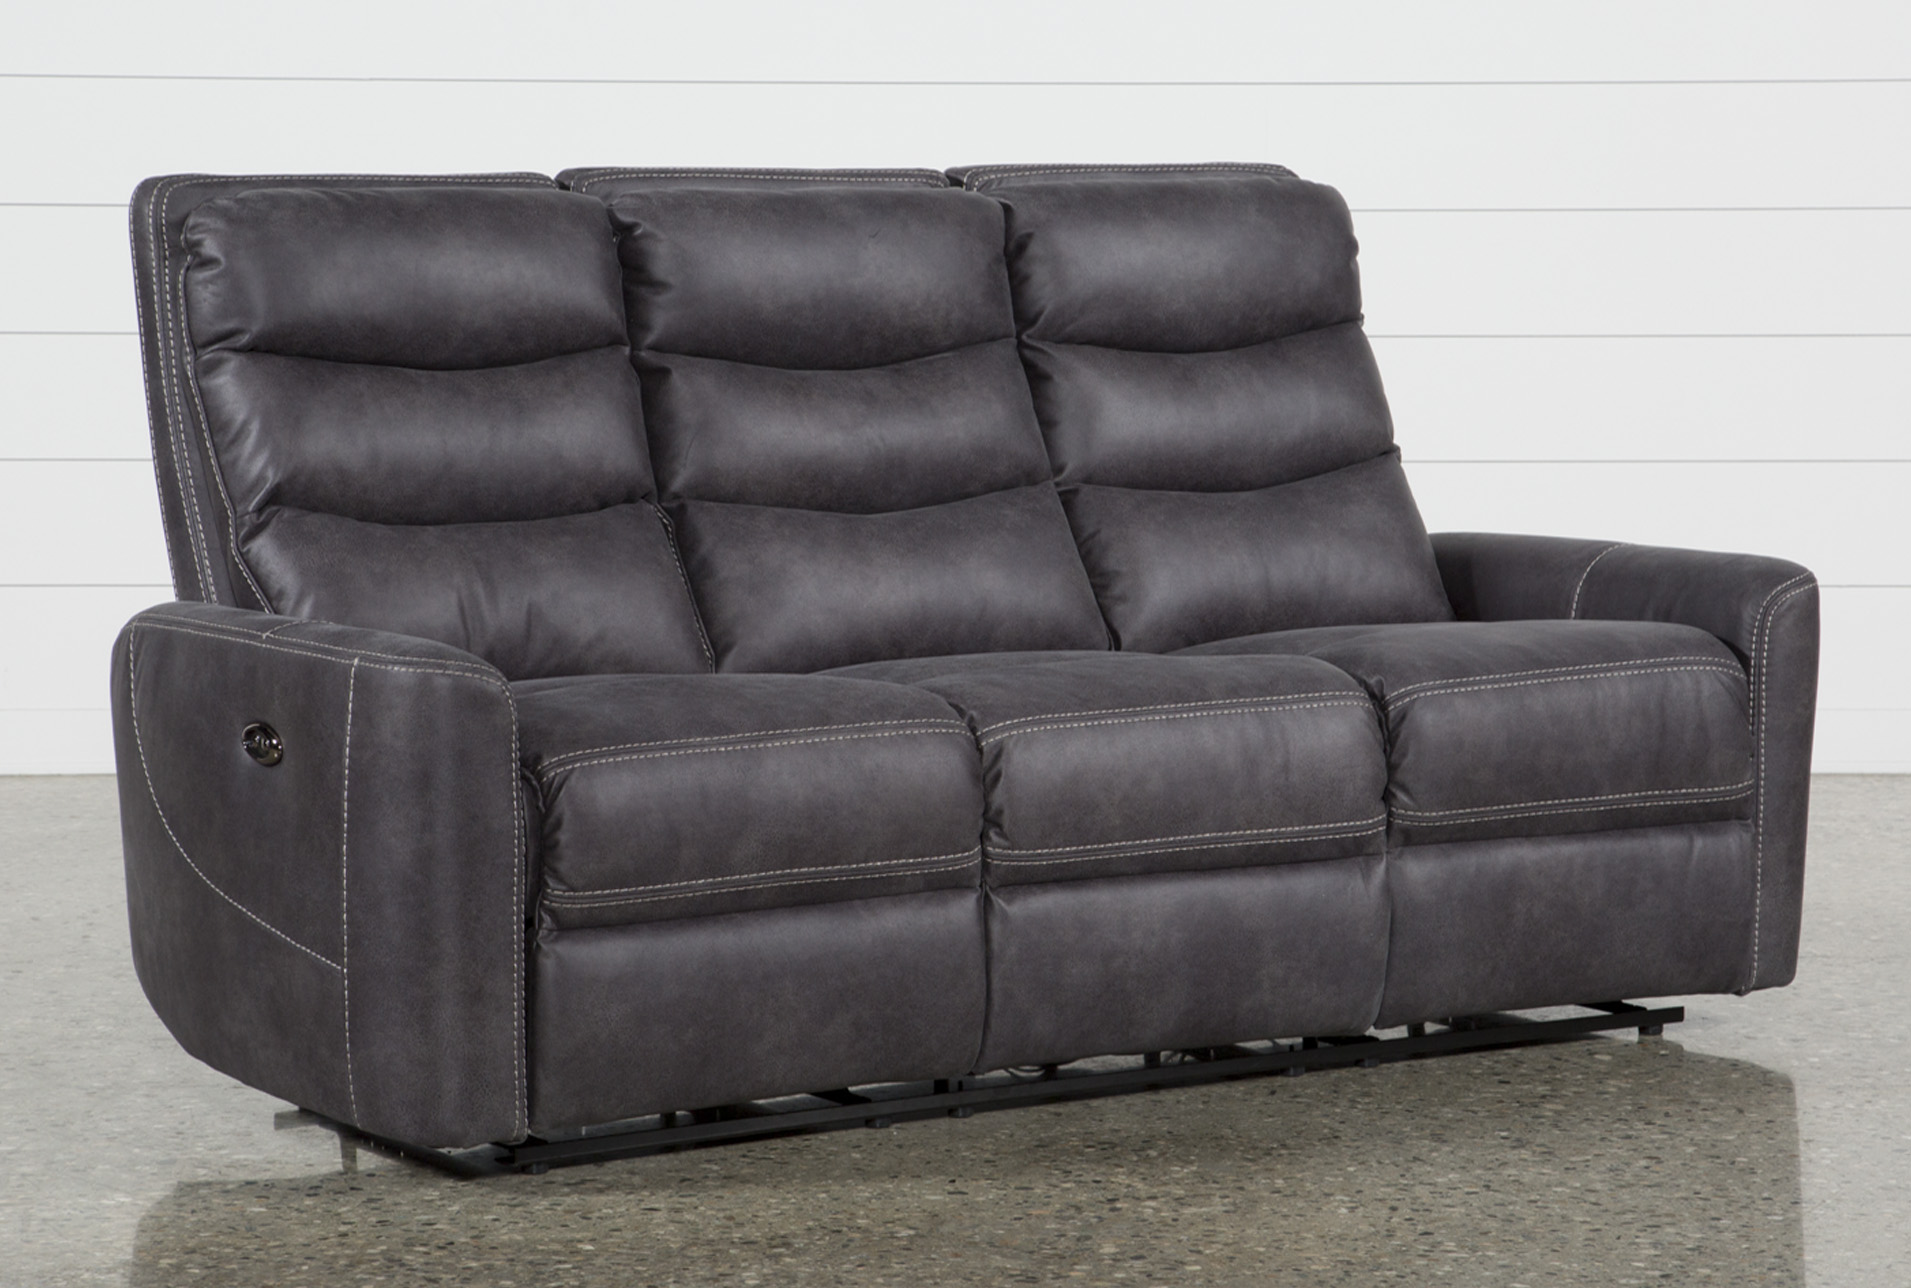 malia power reclining sofa with usb living spaces rh livingspaces com power recliner couch and loveseat power recliners sofa costco